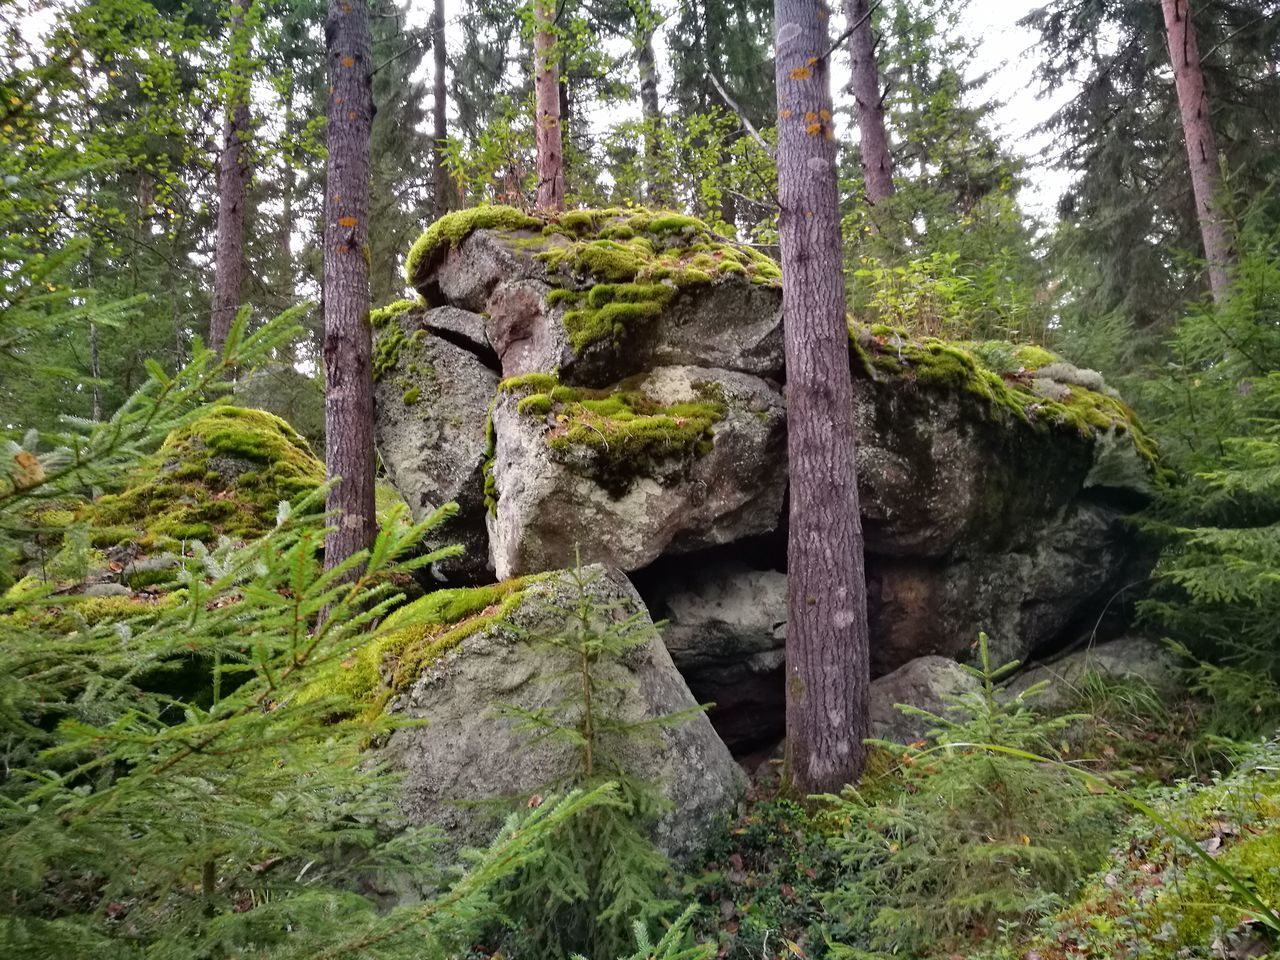 tree, forest, nature, tranquility, tree trunk, outdoors, beauty in nature, growth, tranquil scene, day, no people, scenics, green color, moss, rock - object, sky